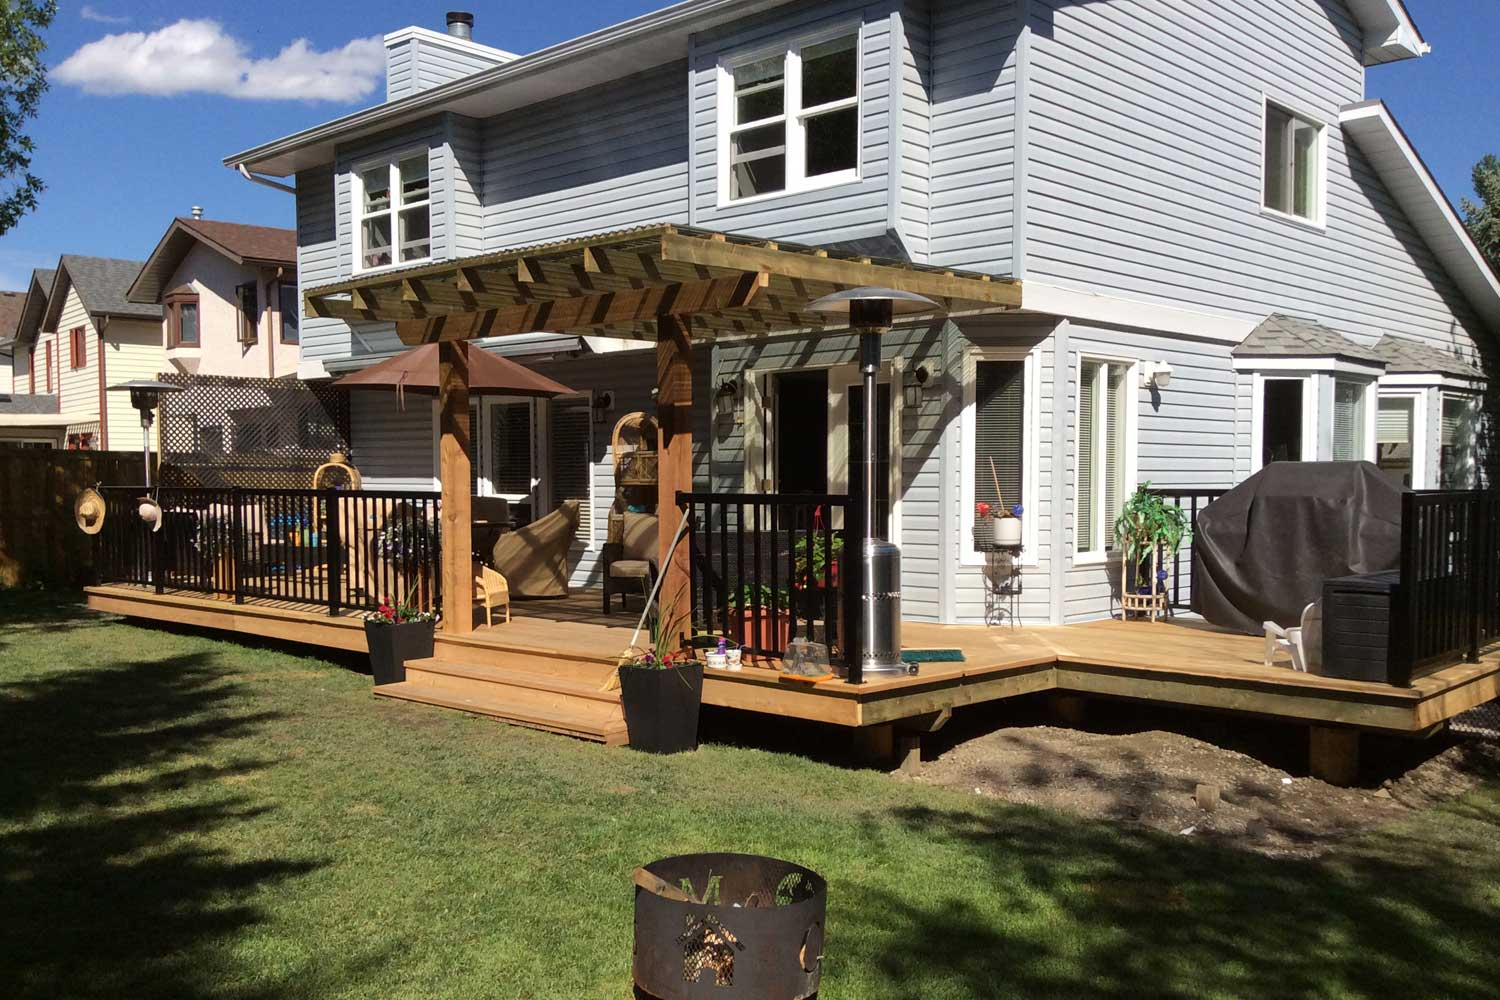 a photo of a backyard with a fire pit, wooden deck and pergola